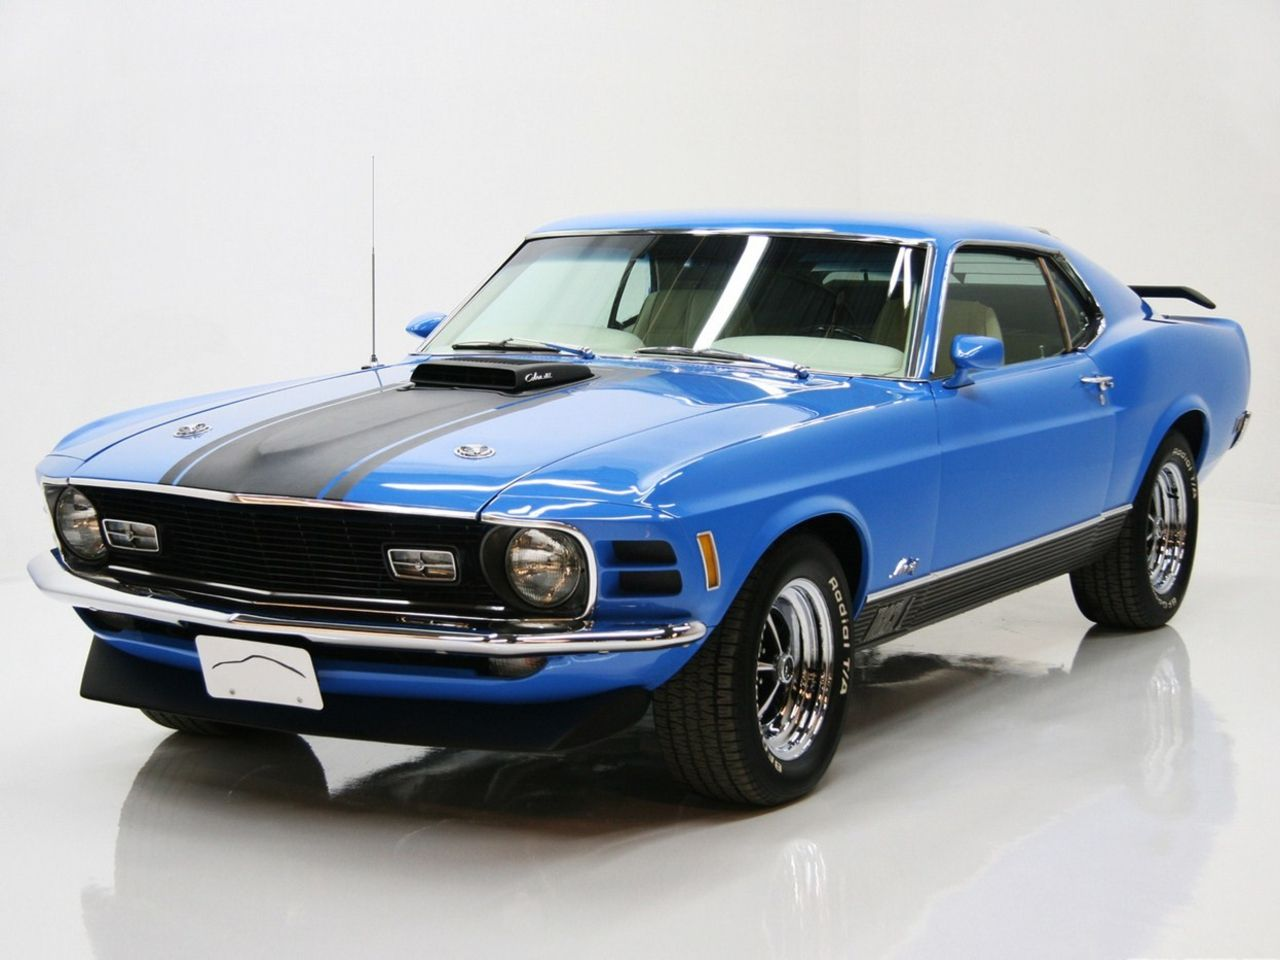 1970 Ford Mustang Maintenance Restoration Of Old Vintage Vehicles The Material For New Cogs Casters Gears Pads Cou Ford Mustang 1970 Ford Mustang Mustang Cars